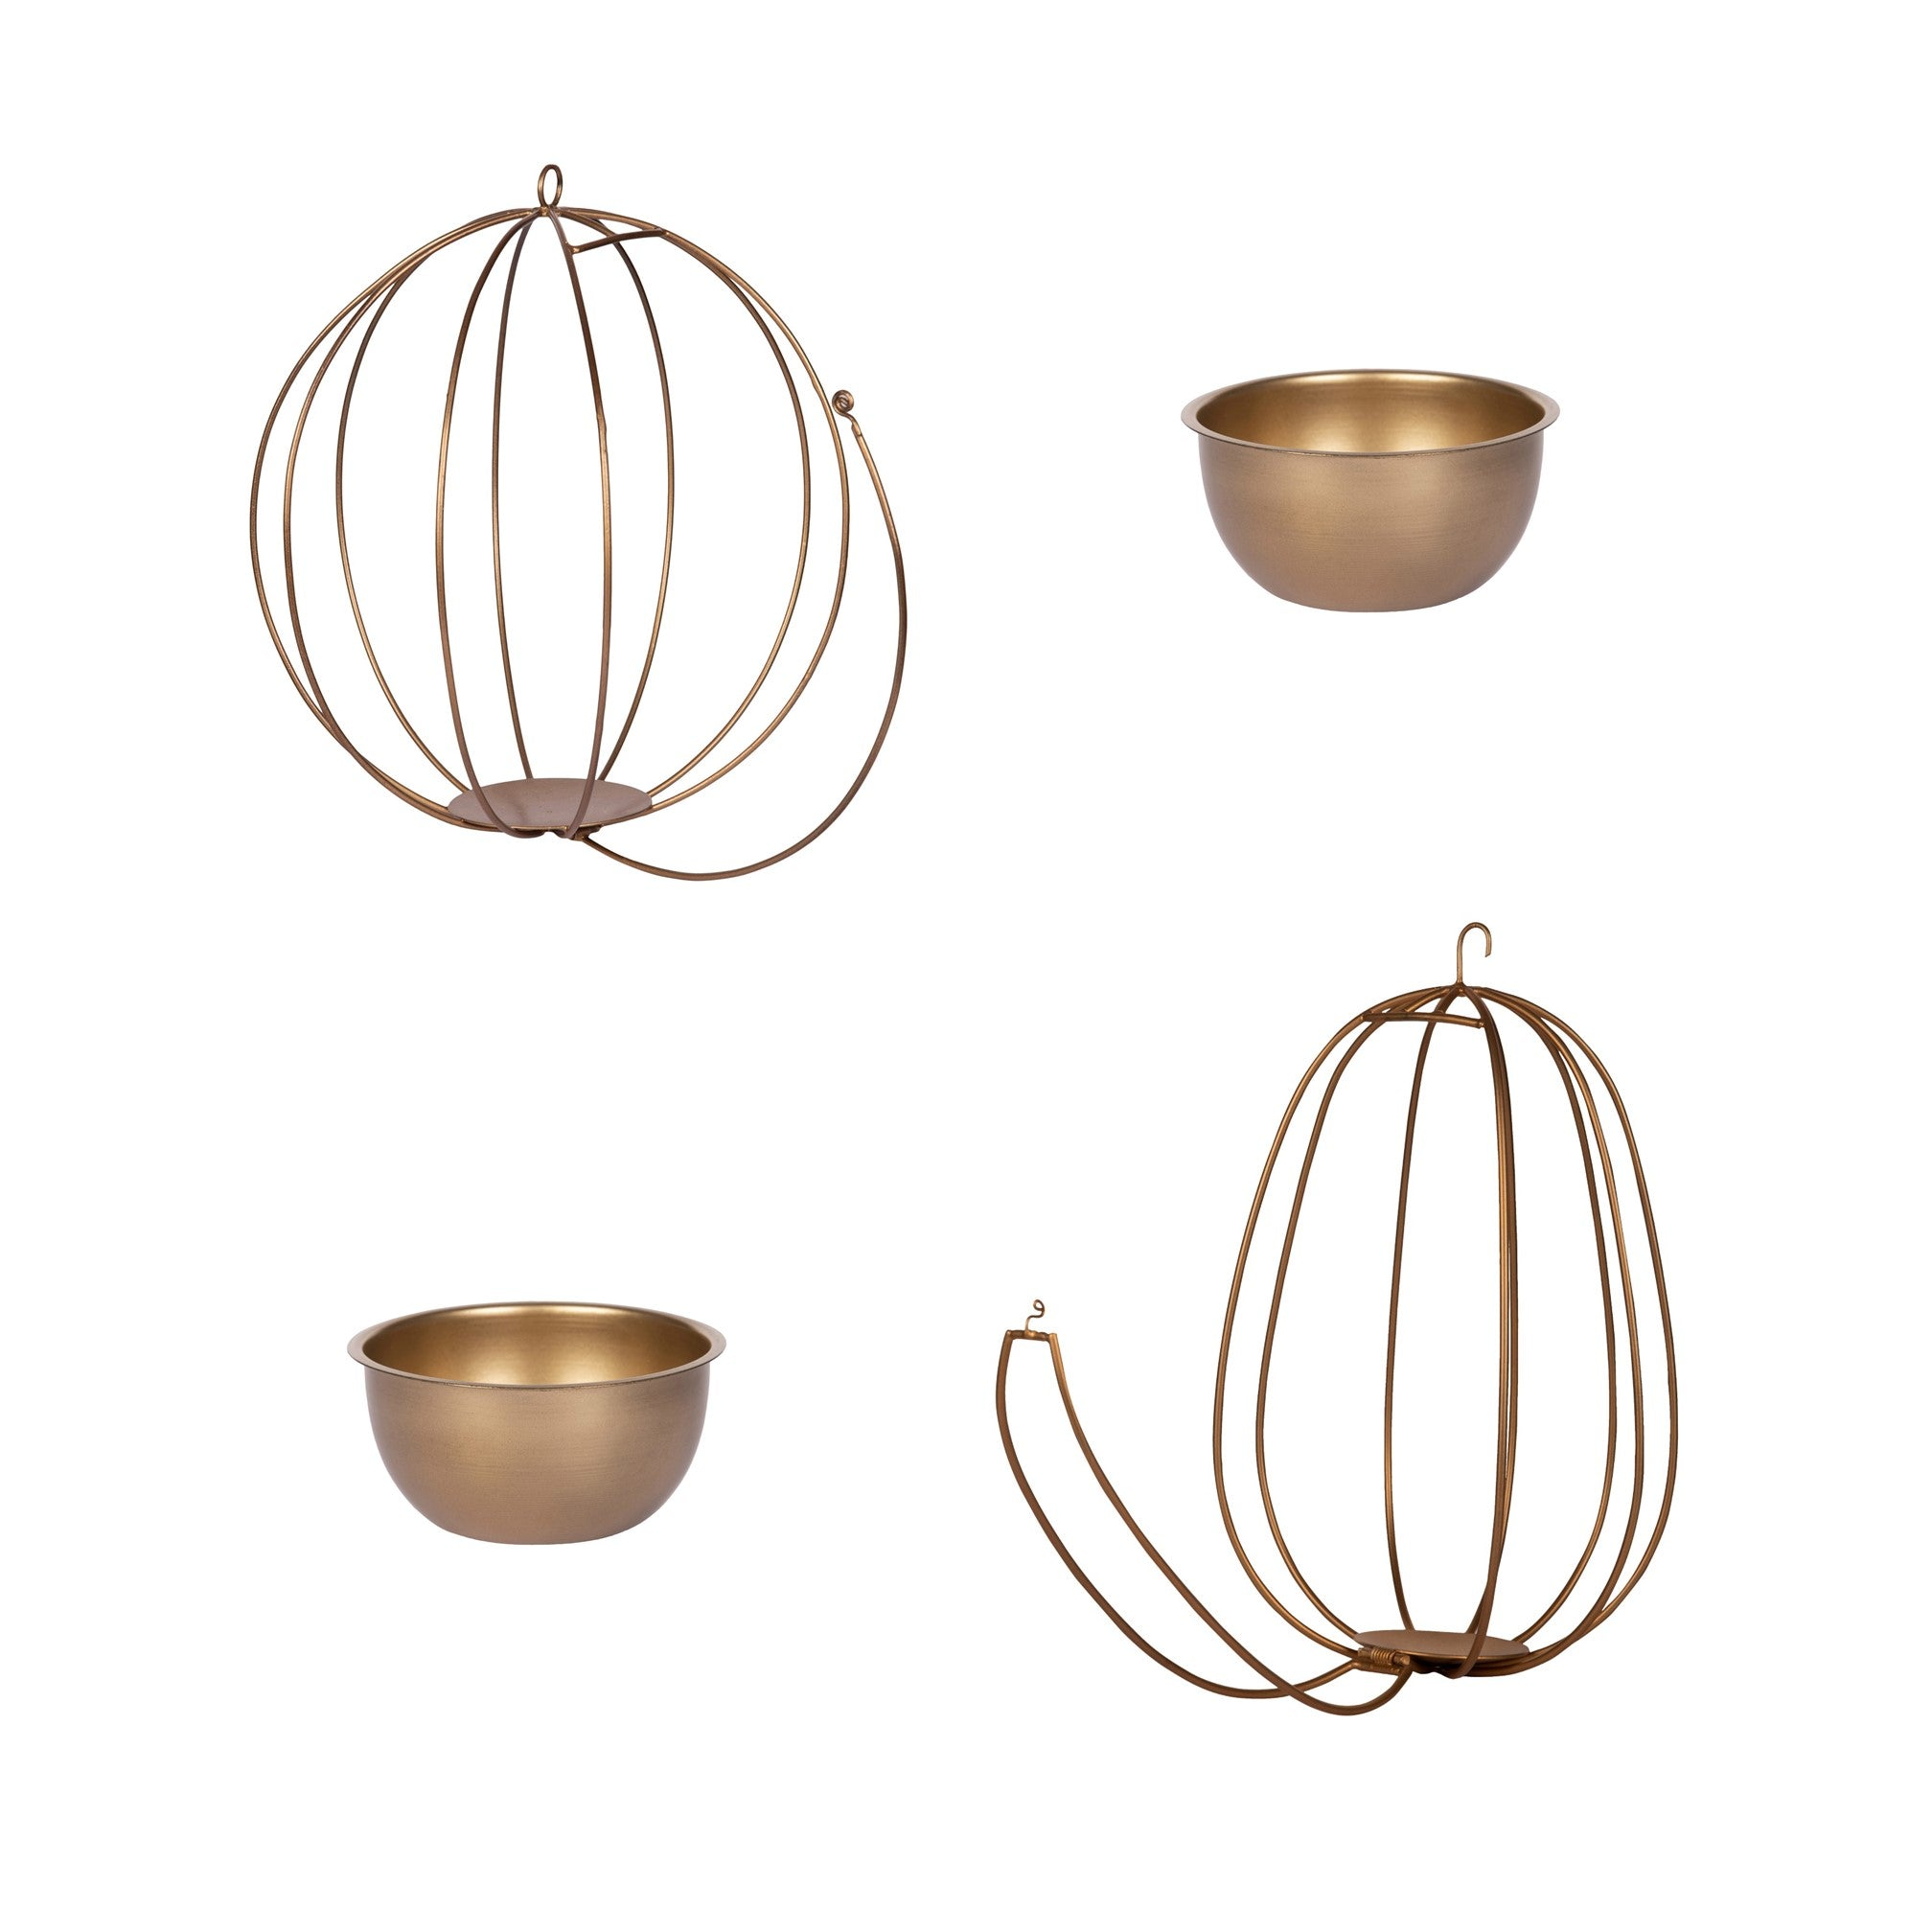 "Set of 2 - ""Watermelon"" & ""Pumpkin"" Metal Candle Holders / Hanging Planters in Gold Finish (Optional Matching Bowls)"